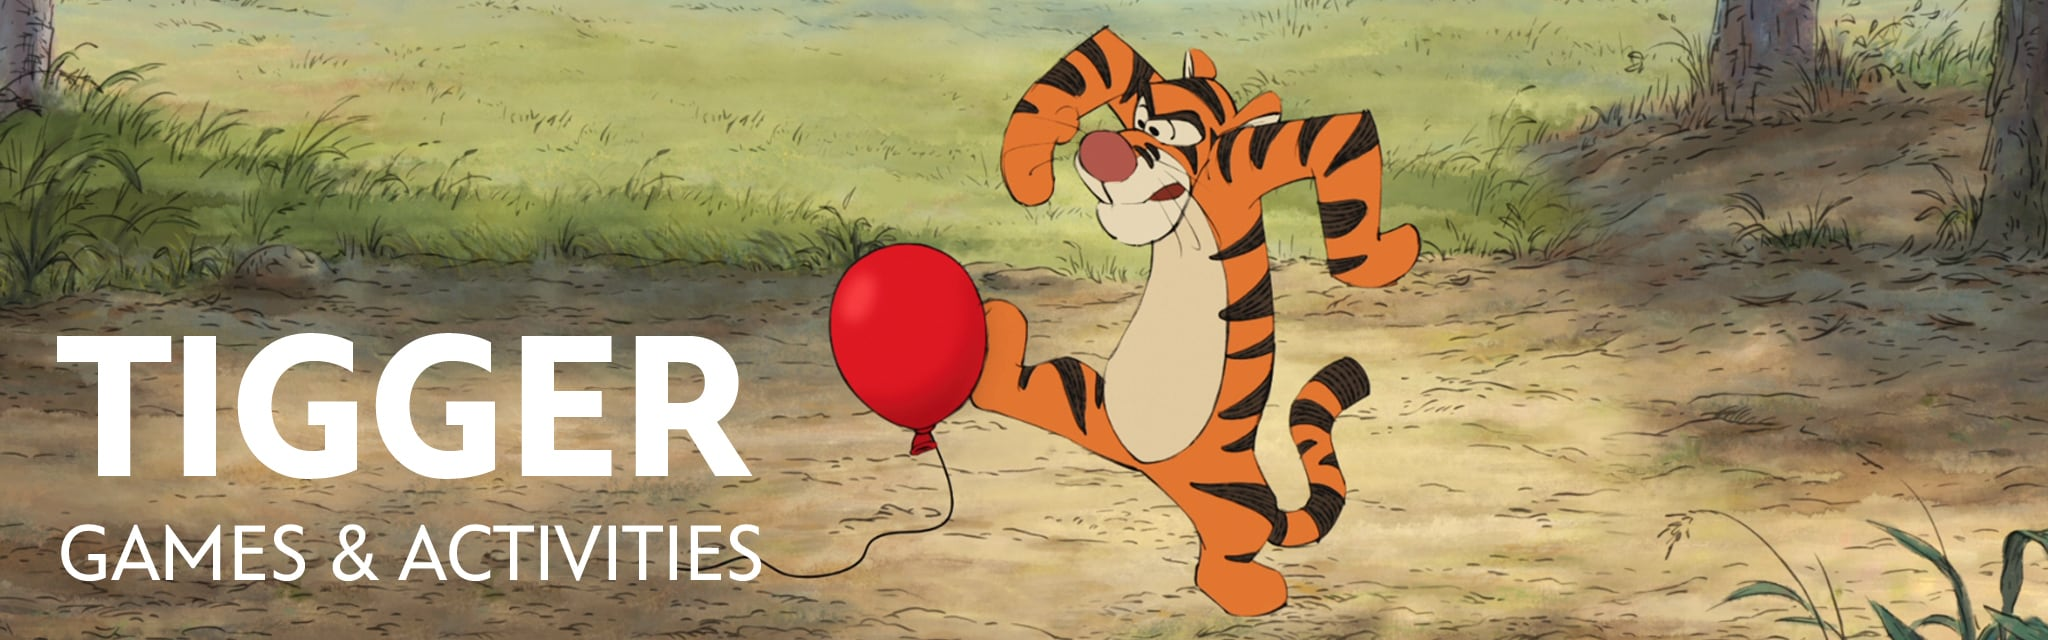 Tigger Games & Activities | Winnie the Pooh